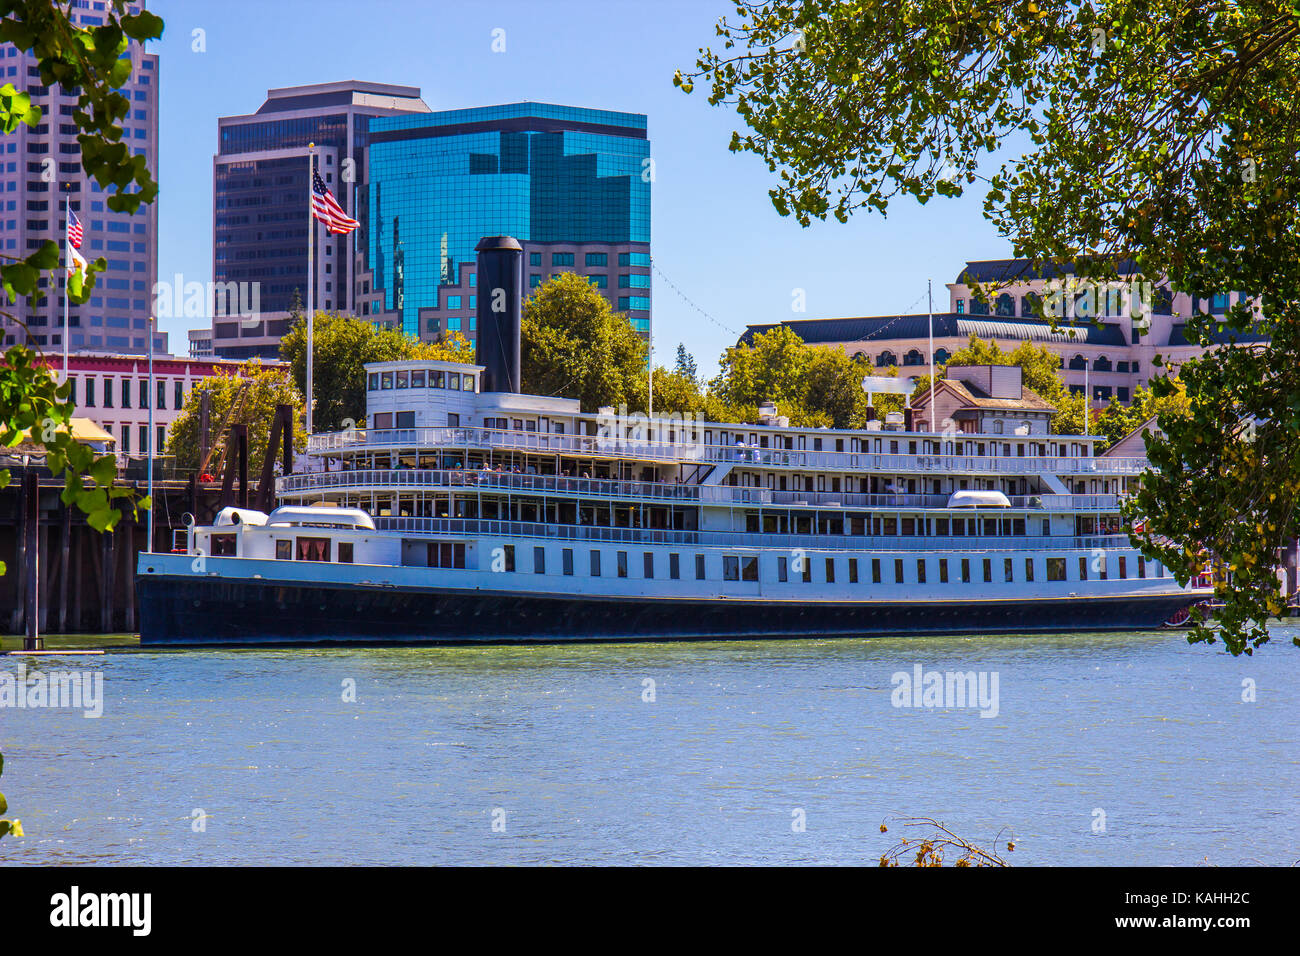 Old Time Paddlewheel Boat At Dock In Sacramento, California - Stock Image